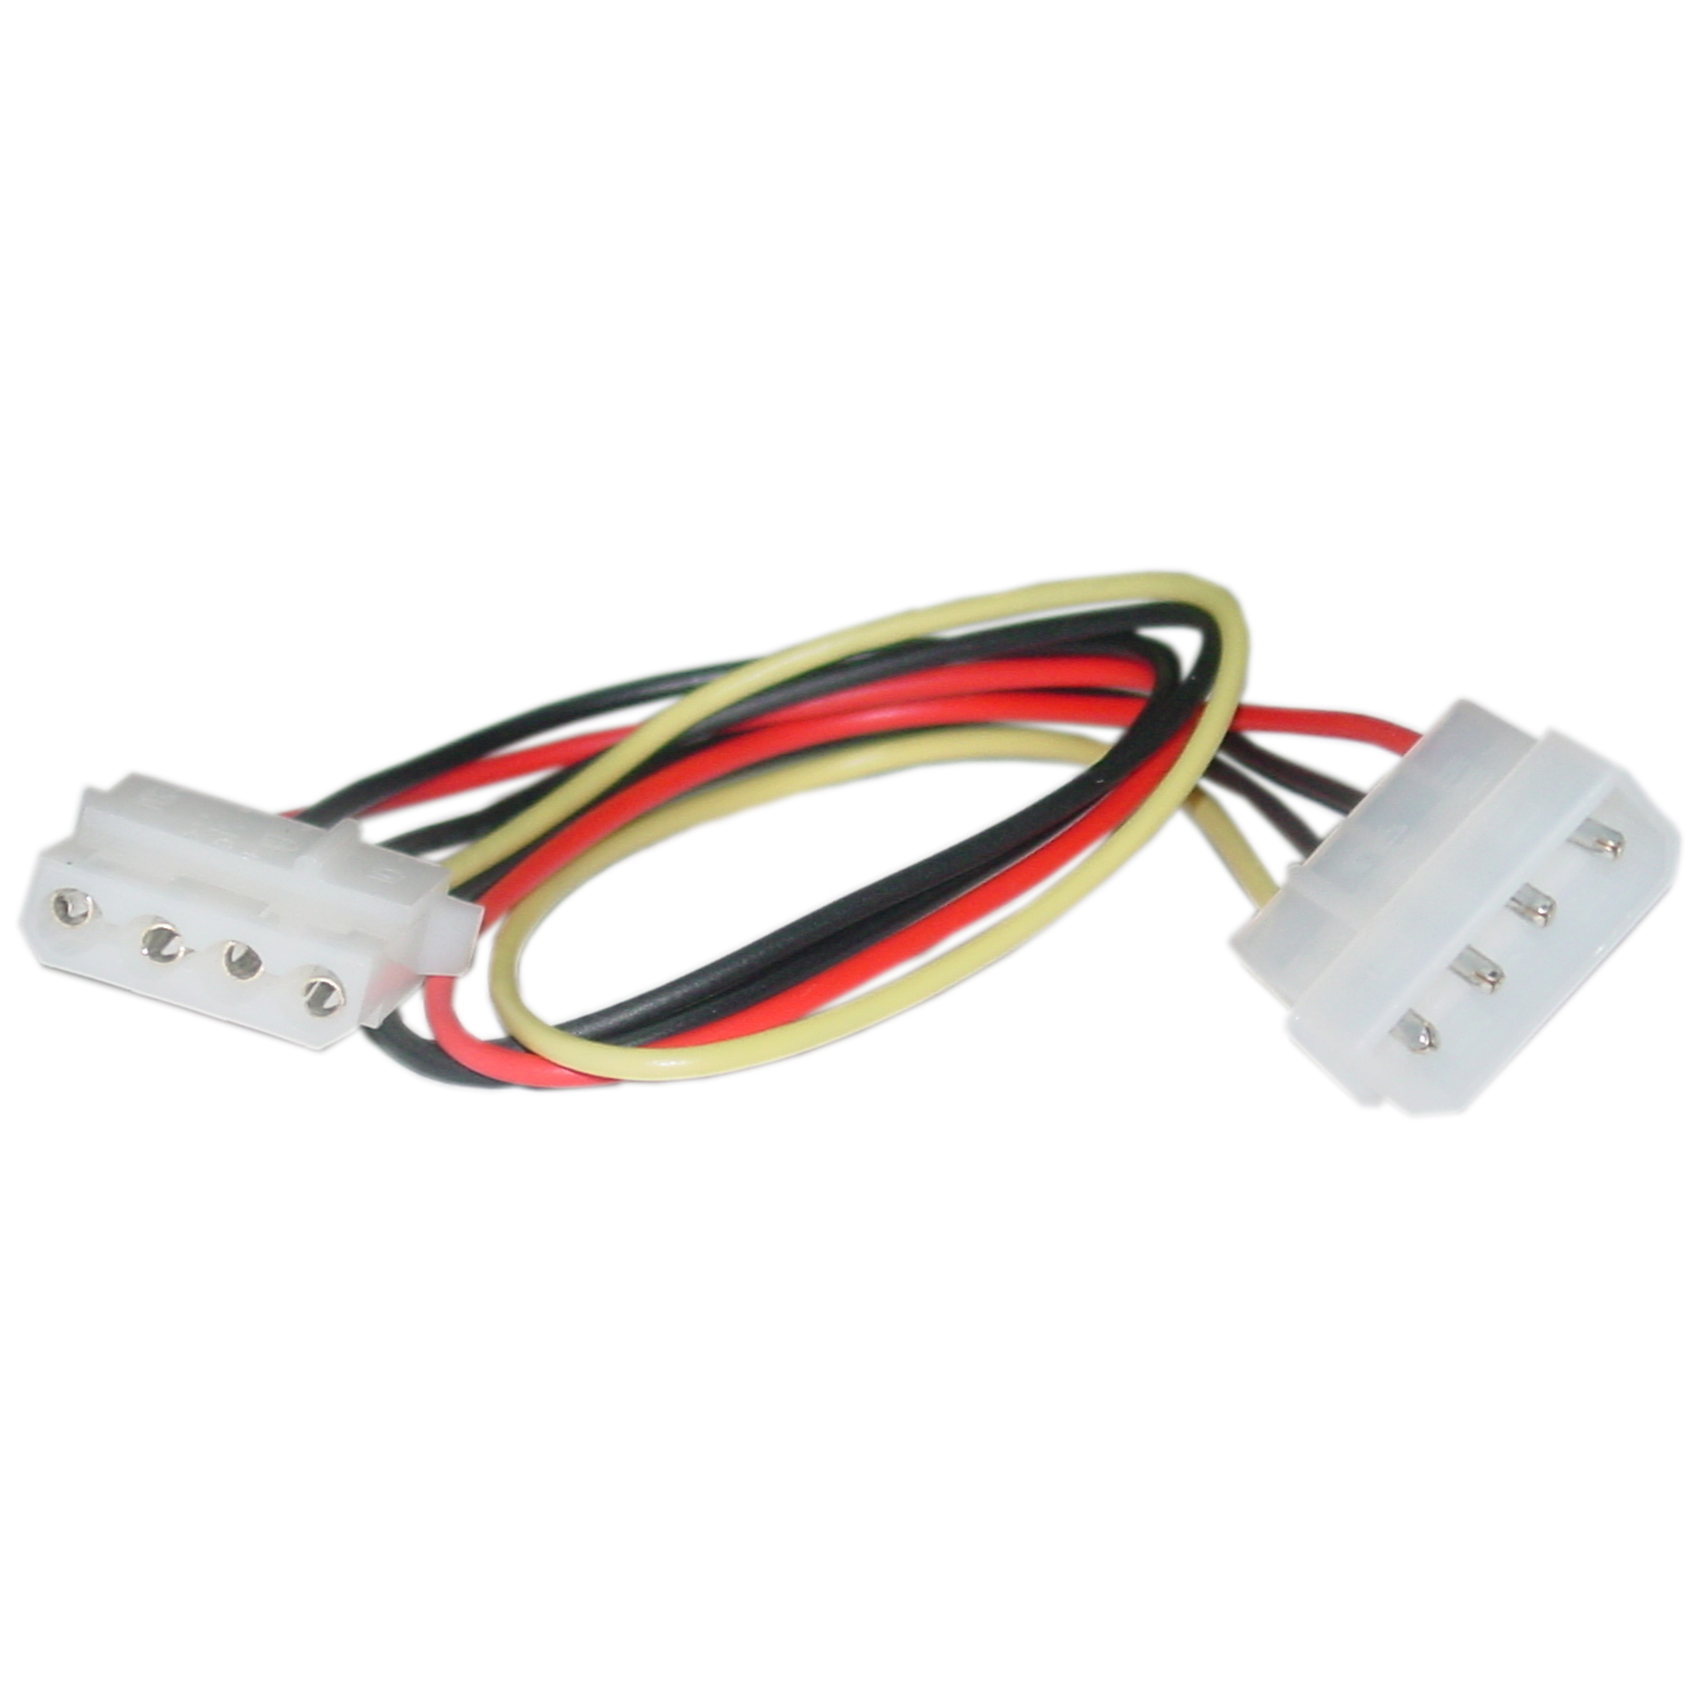 12 inch, 4 Pin, Molex Extension Cable